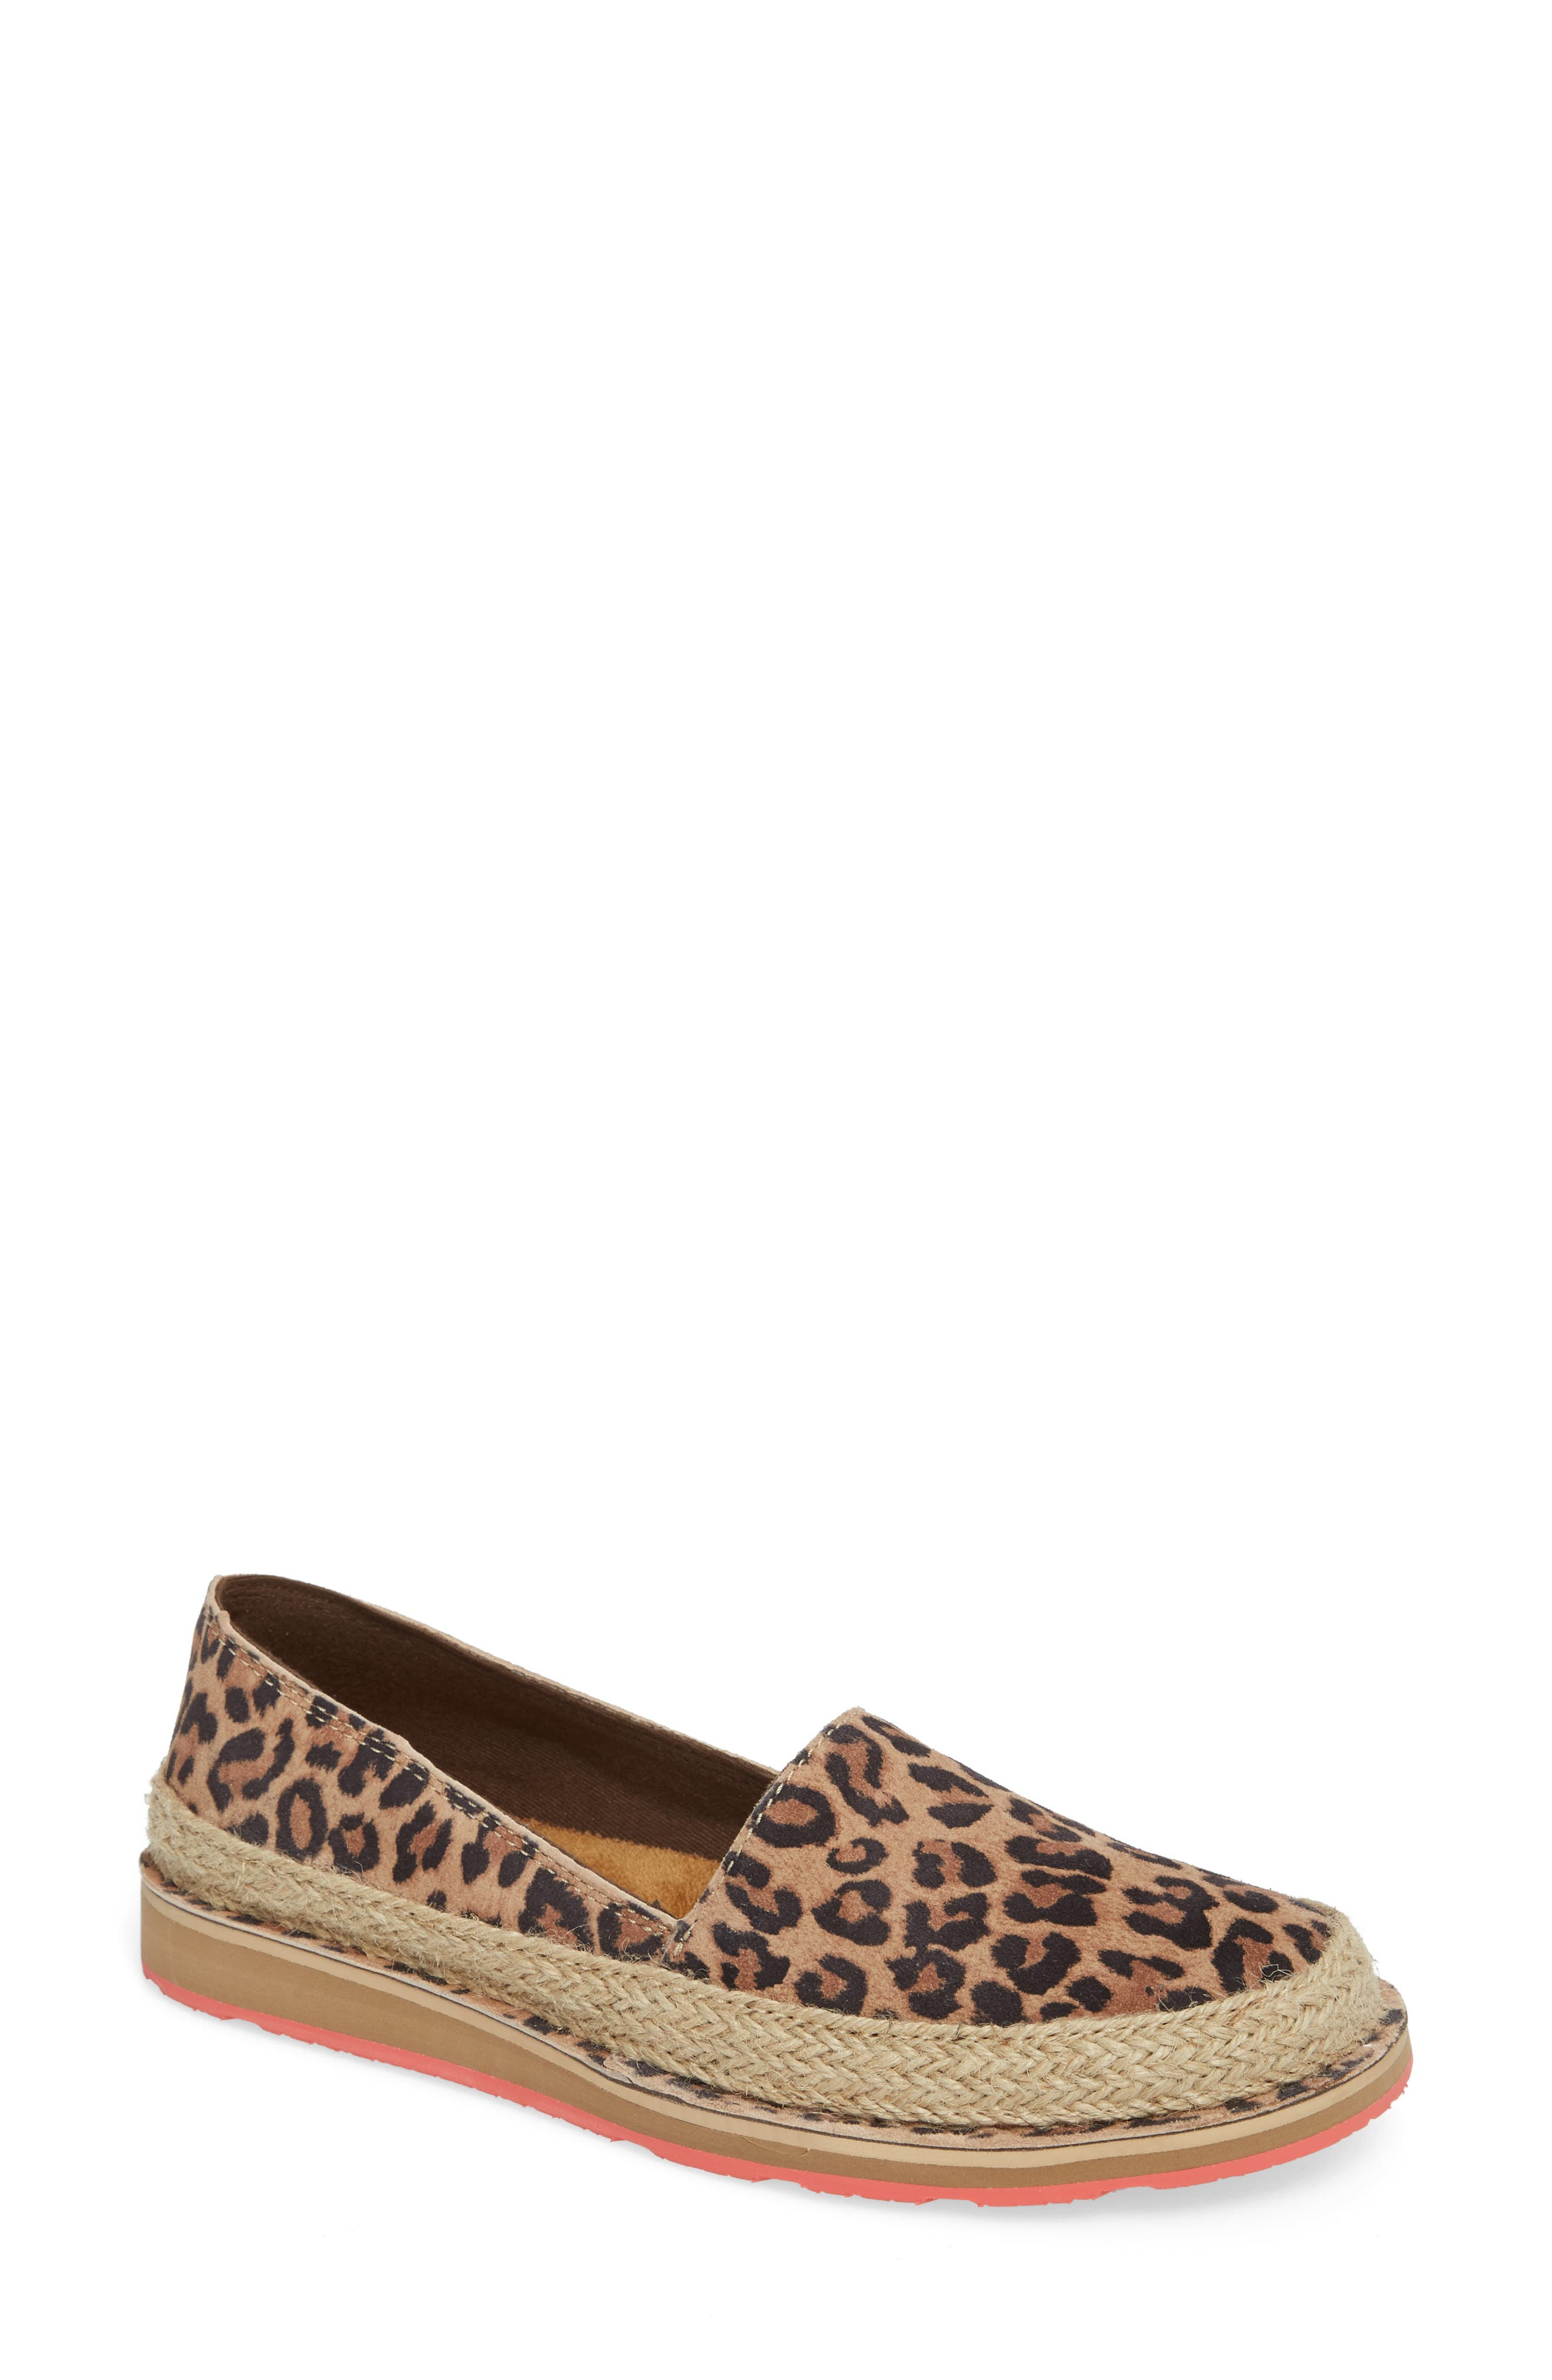 Cruiser Espadrille Loafer,                             Main thumbnail 2, color,